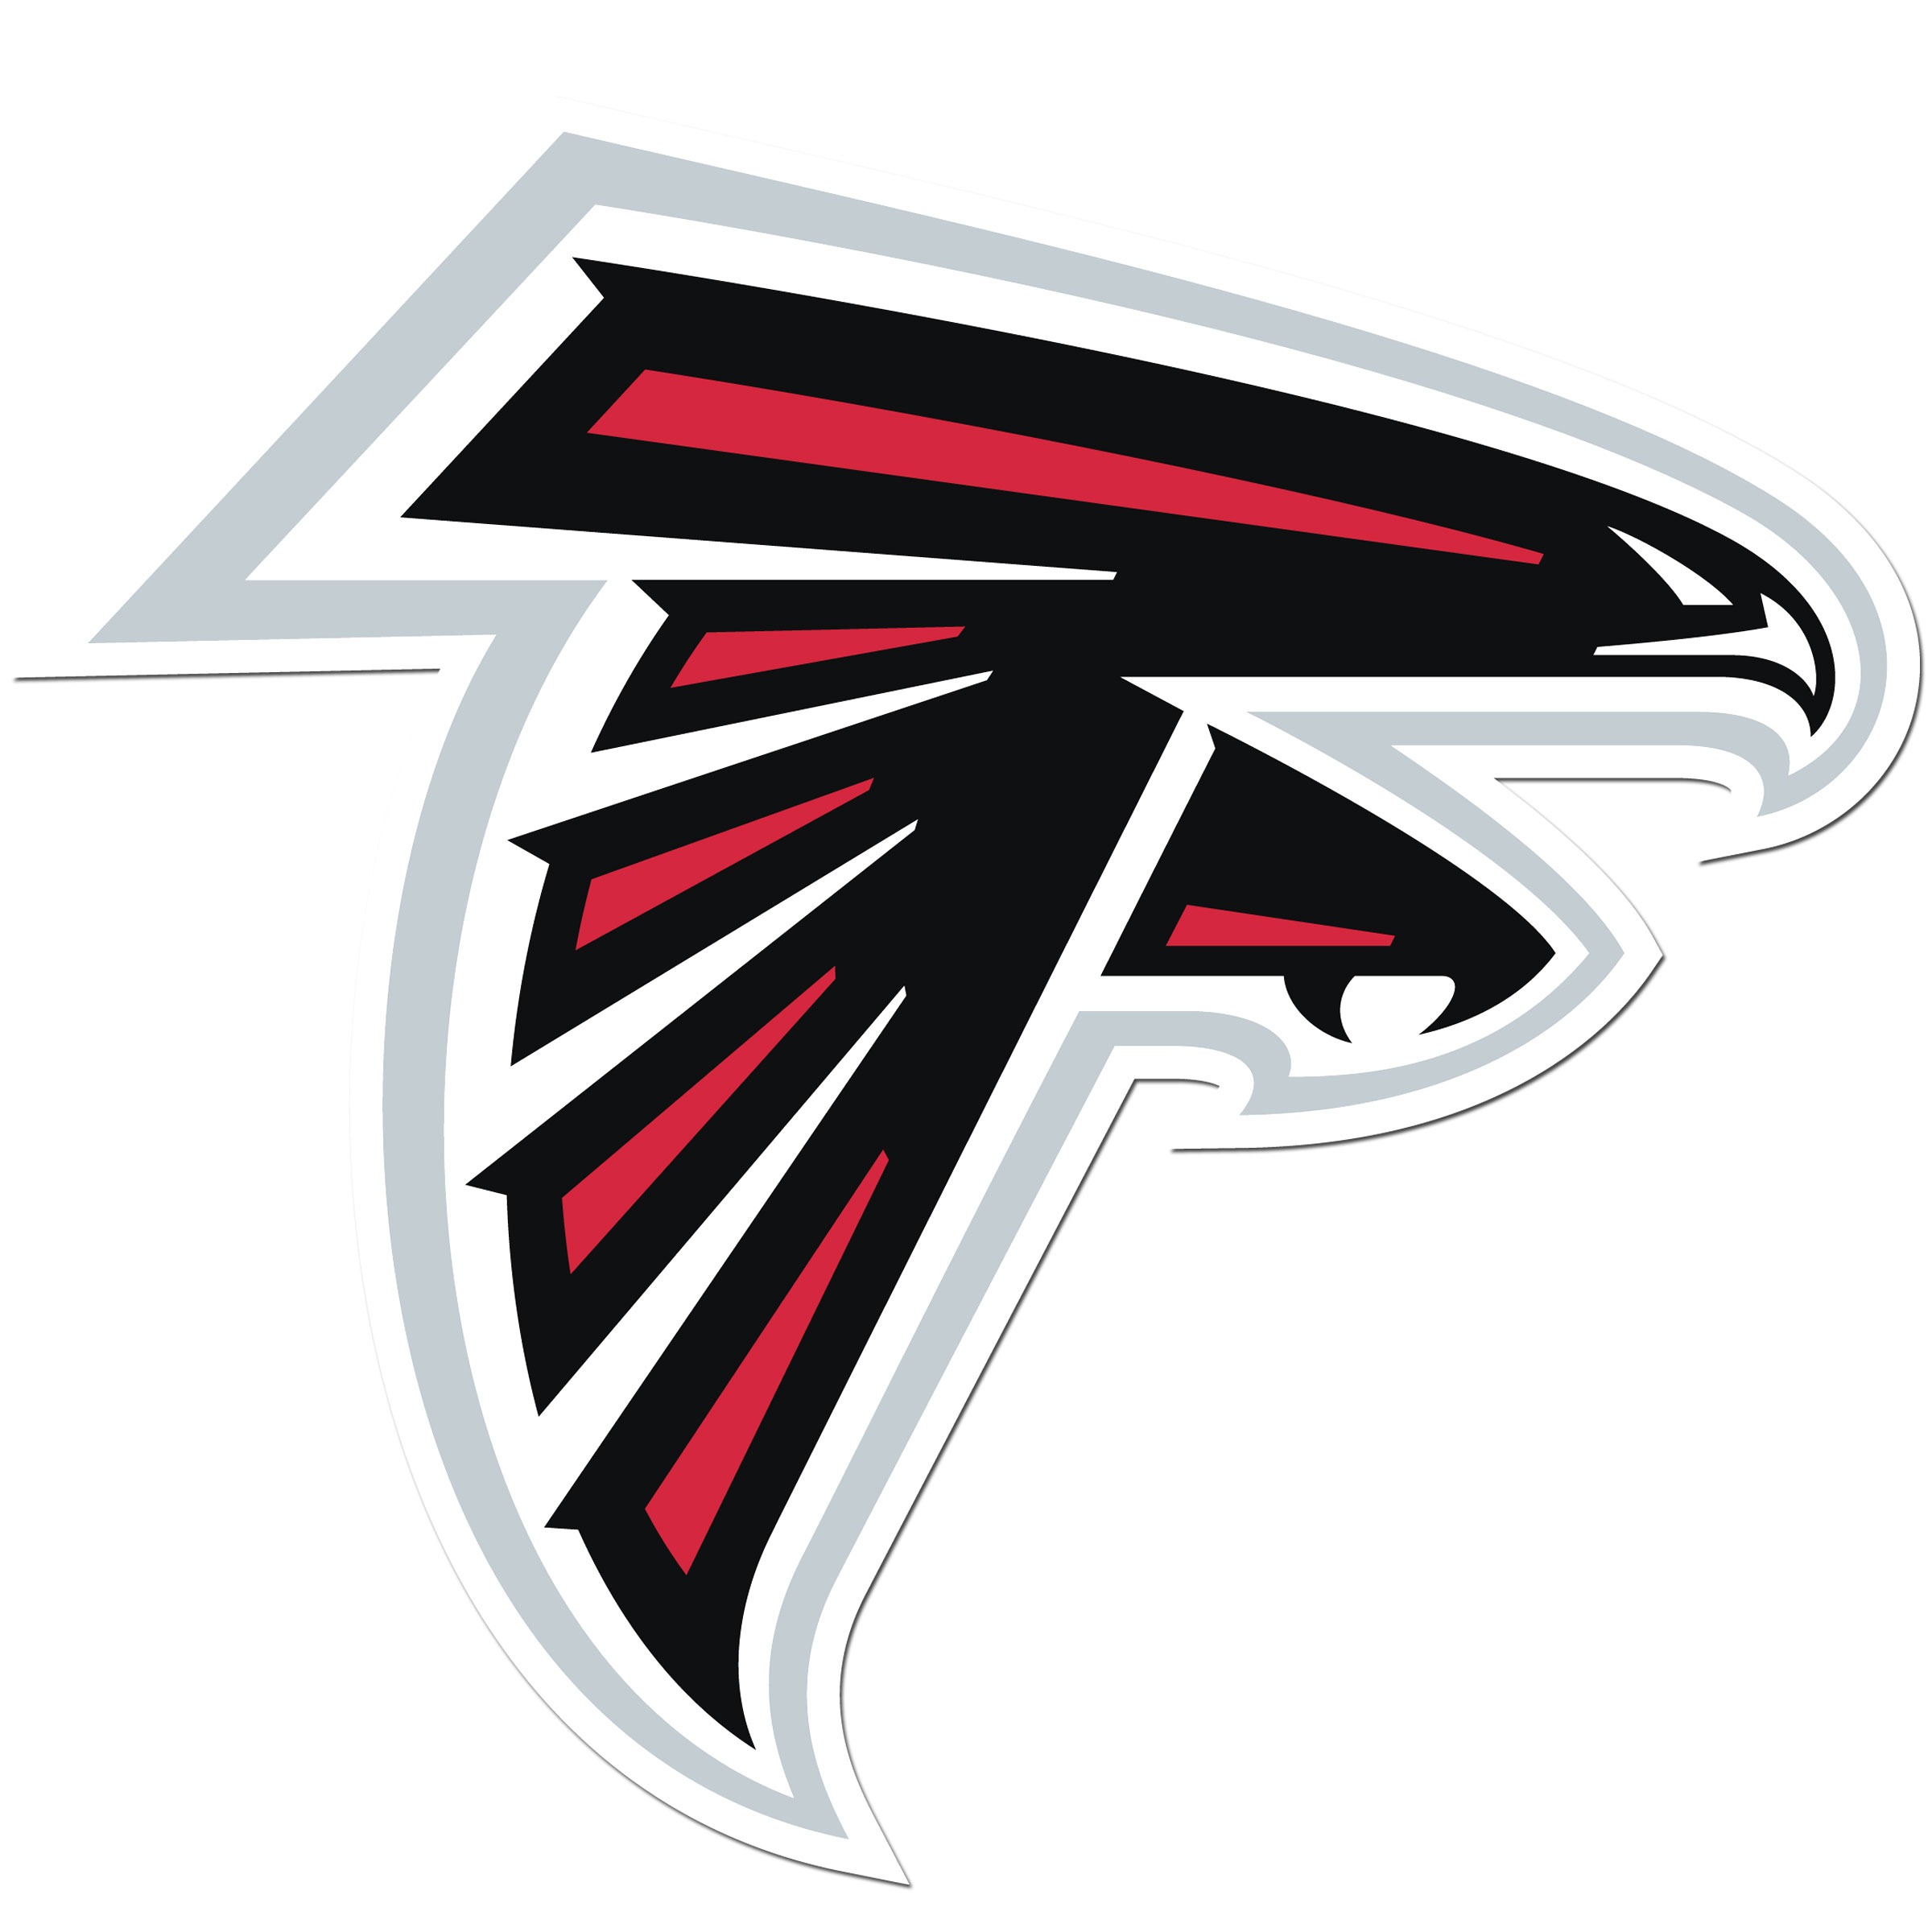 Atlanta Falcons 8 inch Auto Decal - This bold, 8 inch Atlanta Falcons is a great way to show off your team pride! The low tack vinyl decal is easily positioned and adjusted to make sure you get that logo in just the right spot on your vehicle. Designed to be used on the outside of the window.